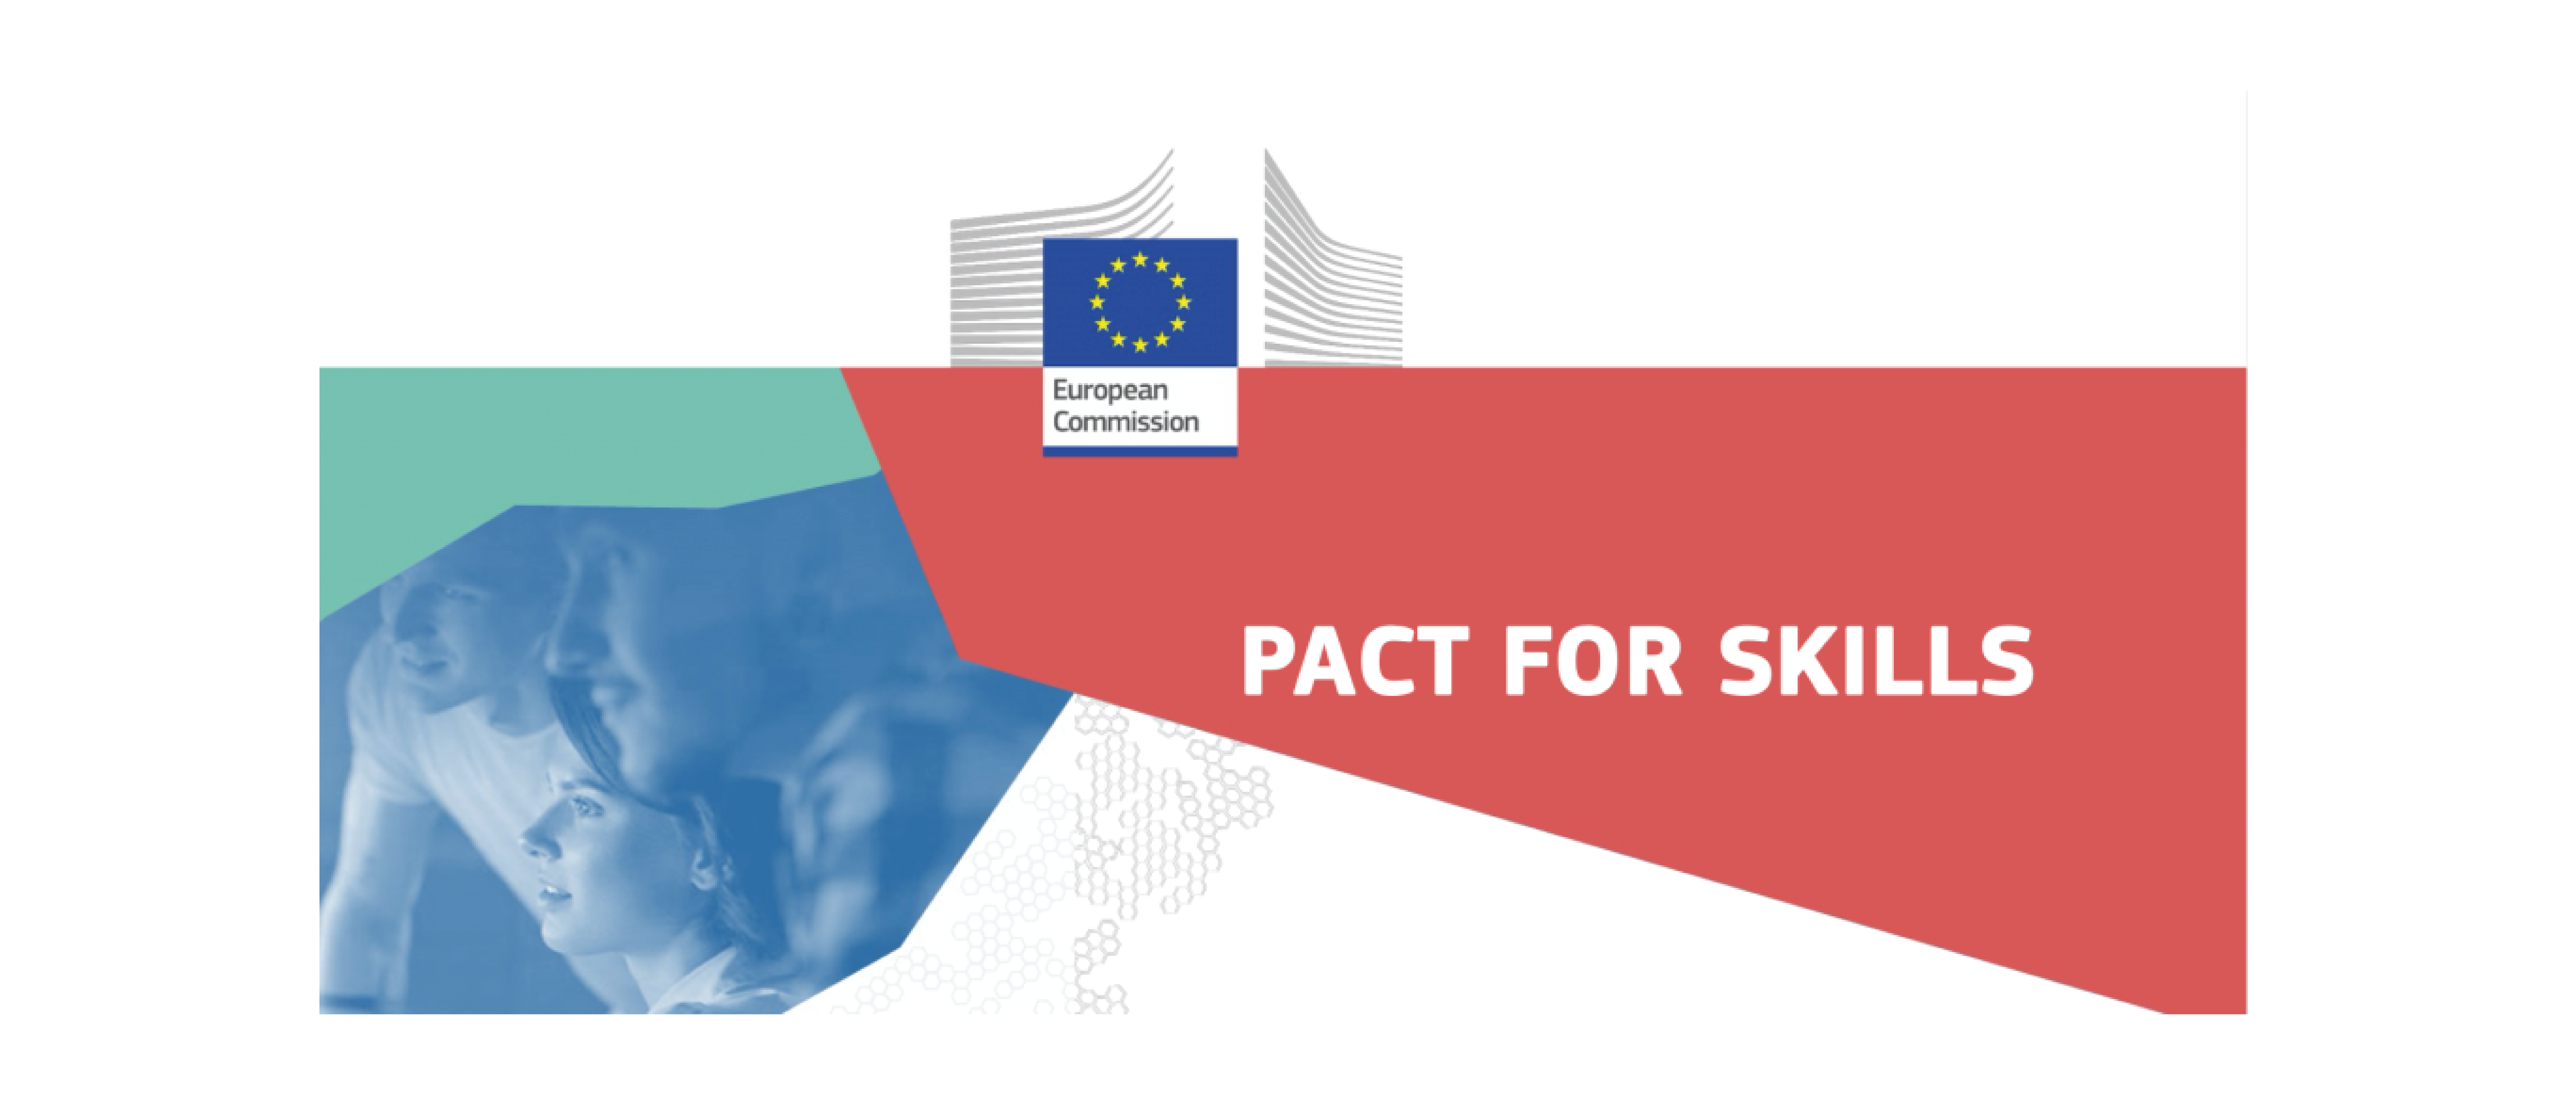 Pact for skills - Home